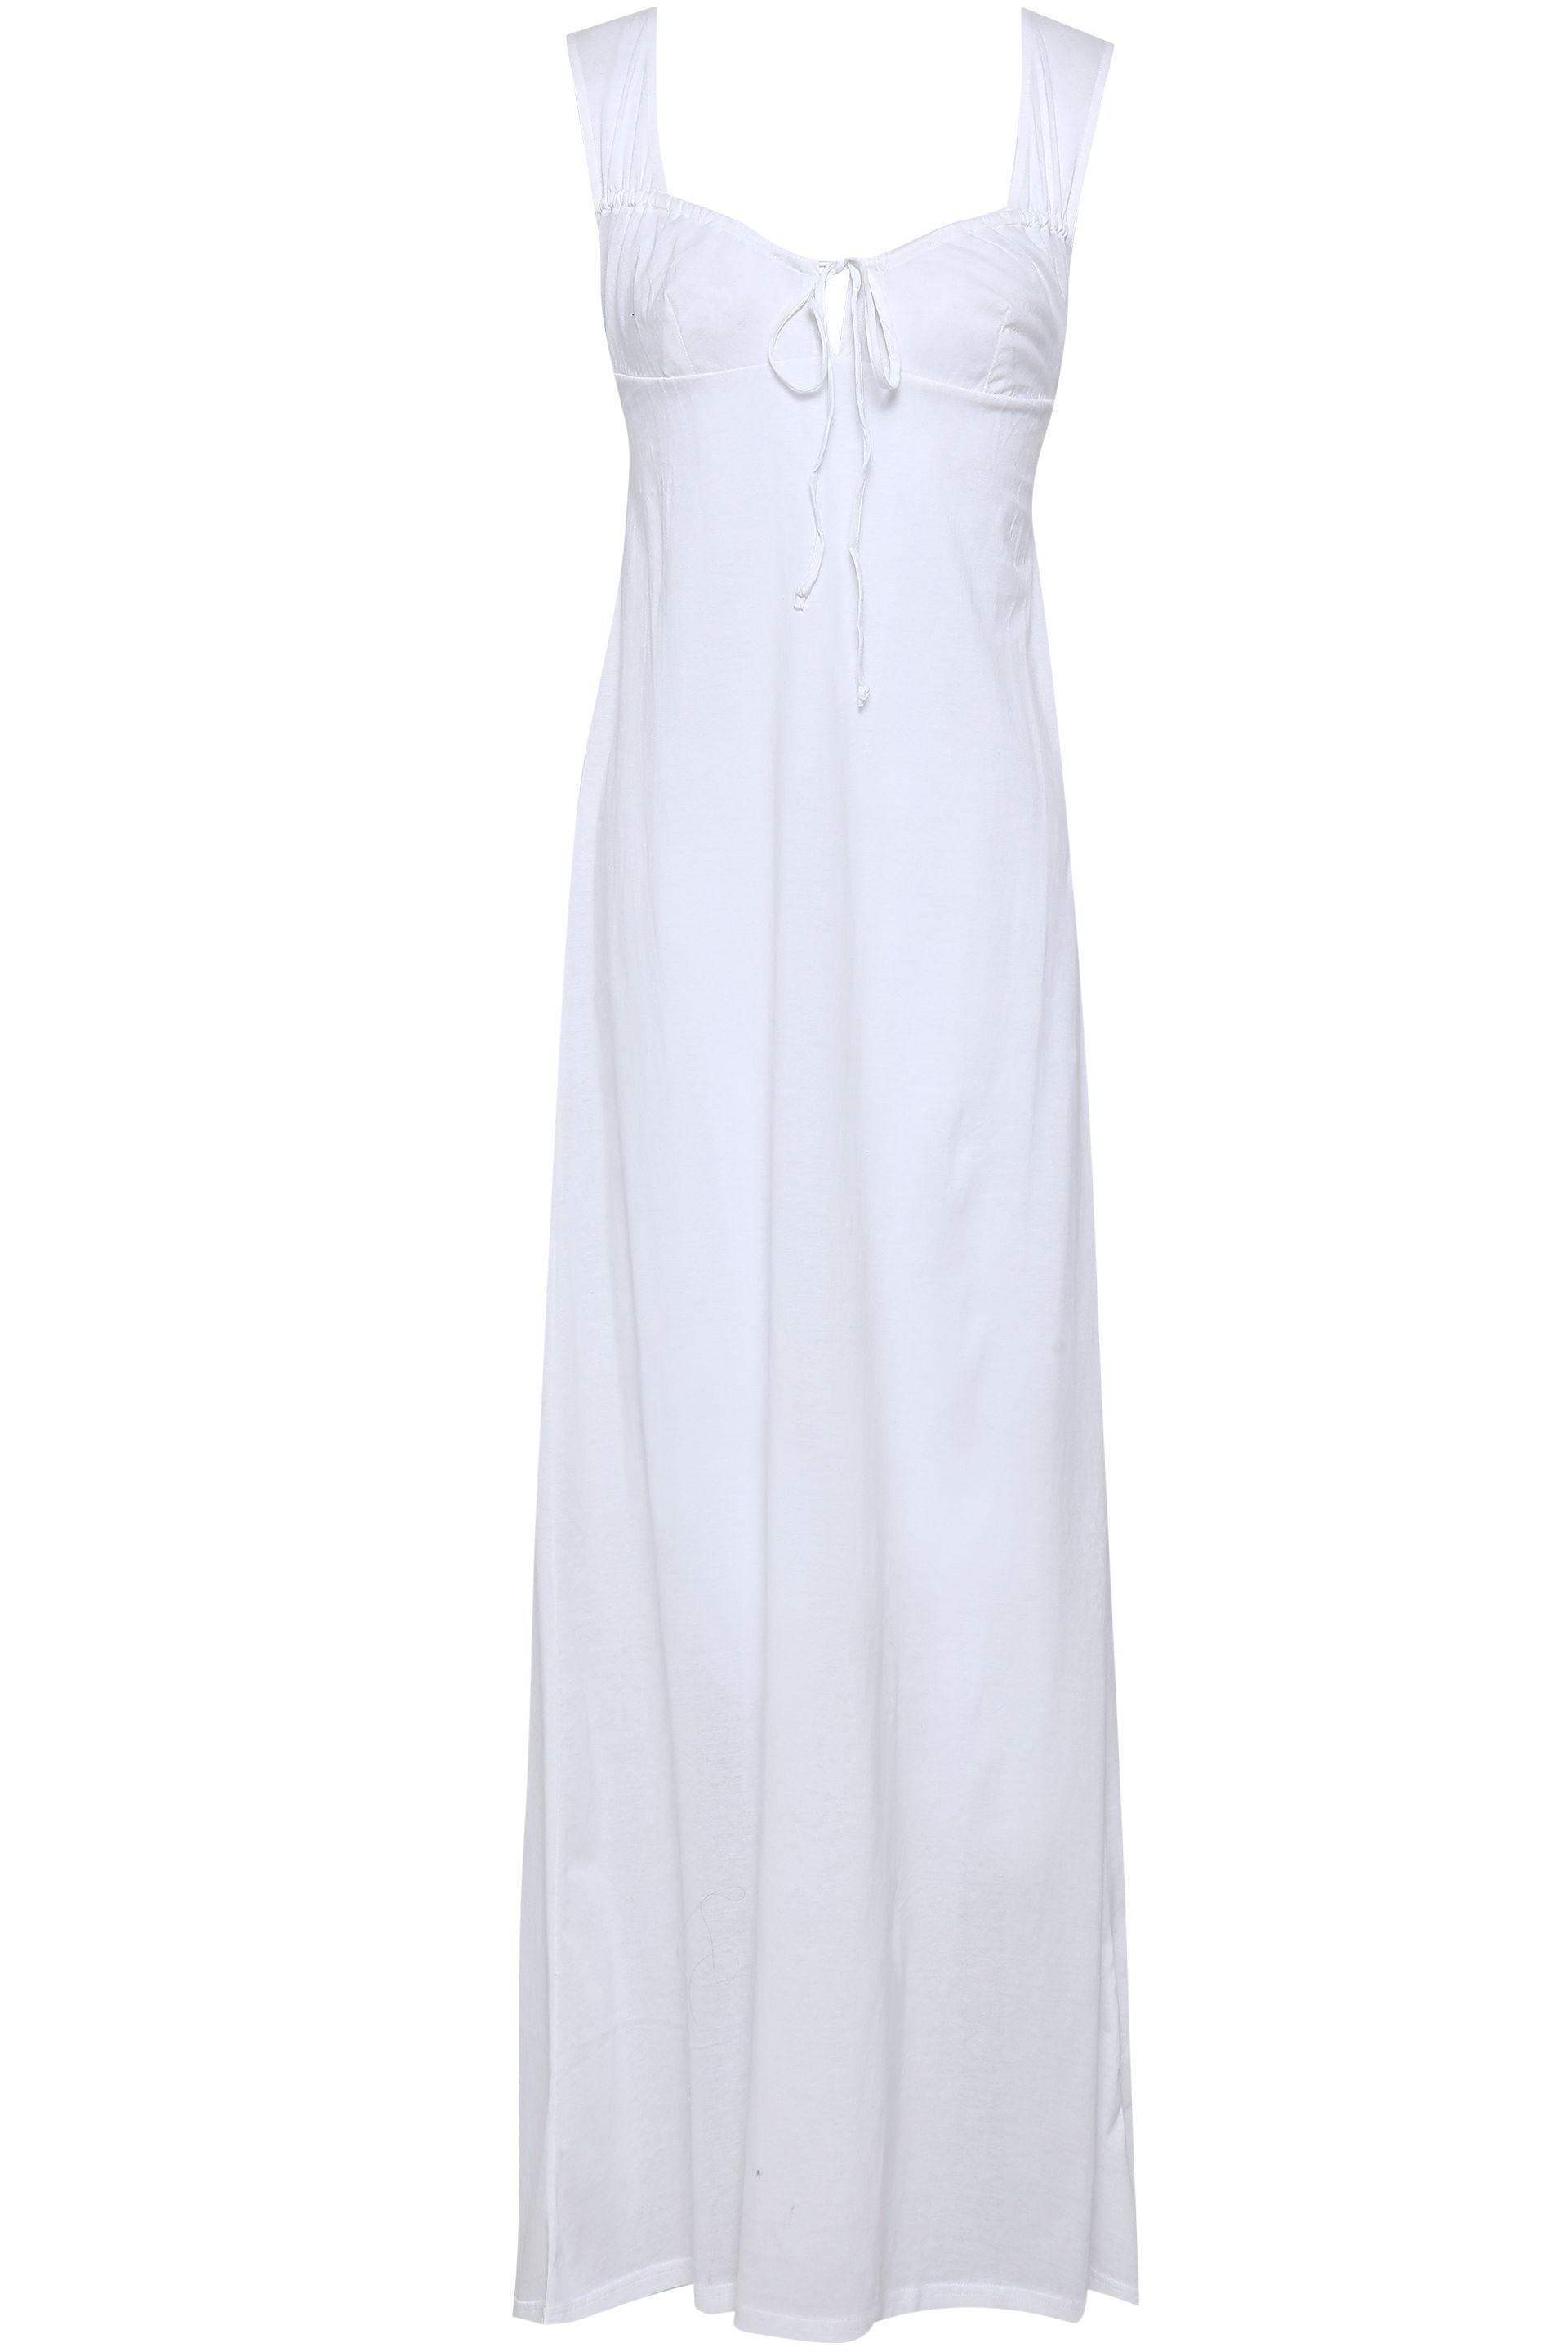 b7e2785639 Bodas Bow-detailed Shirred Cotton-jersey Nightdress in White - Lyst